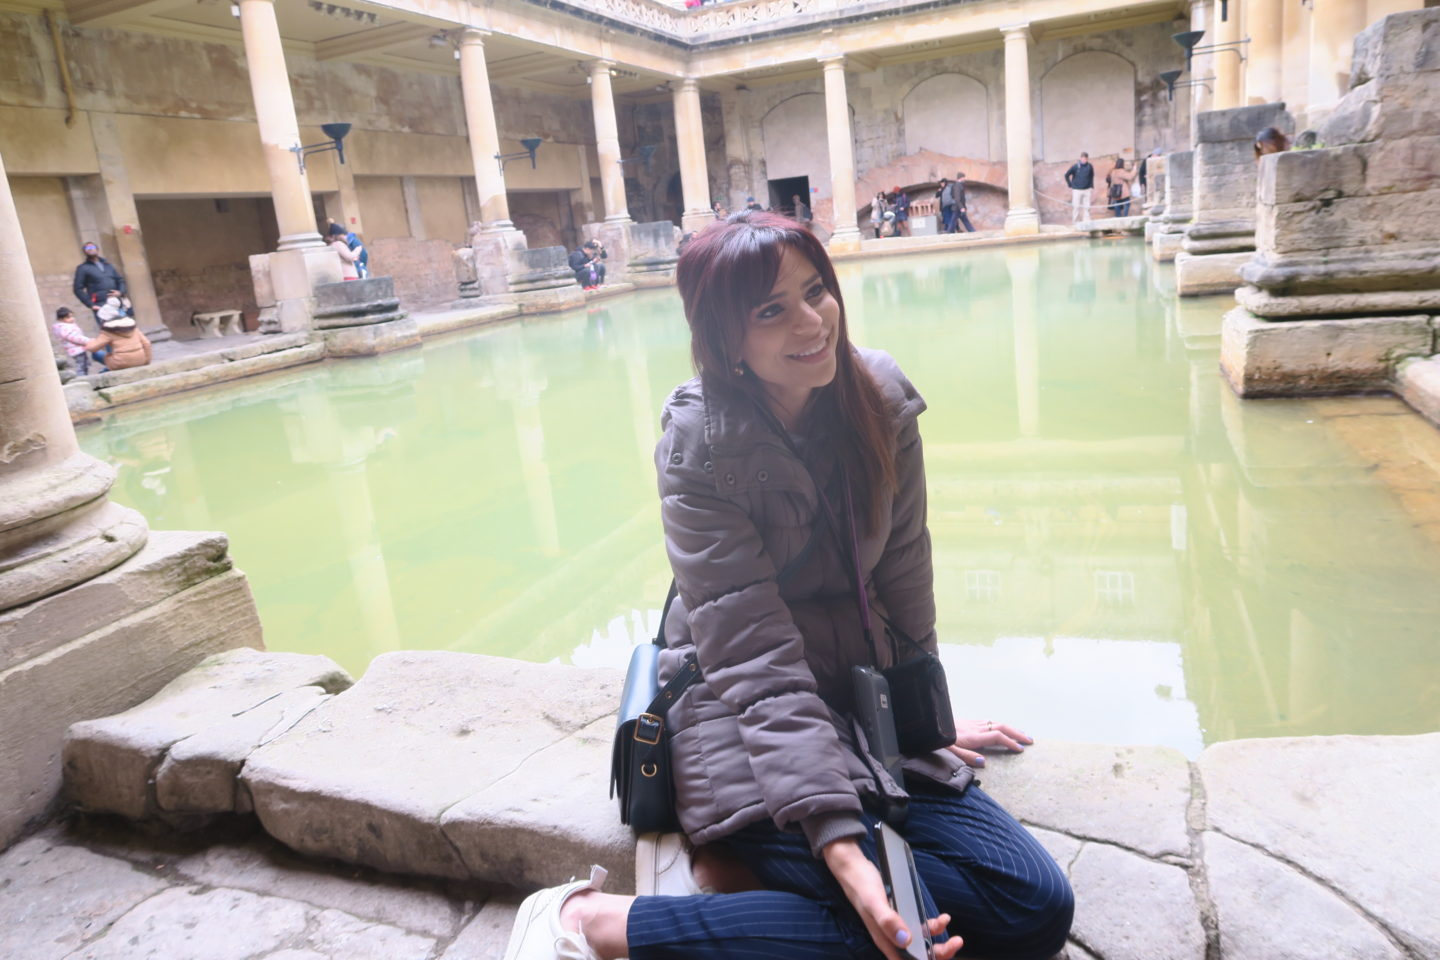 A visit to The Roman Baths for a weekend away